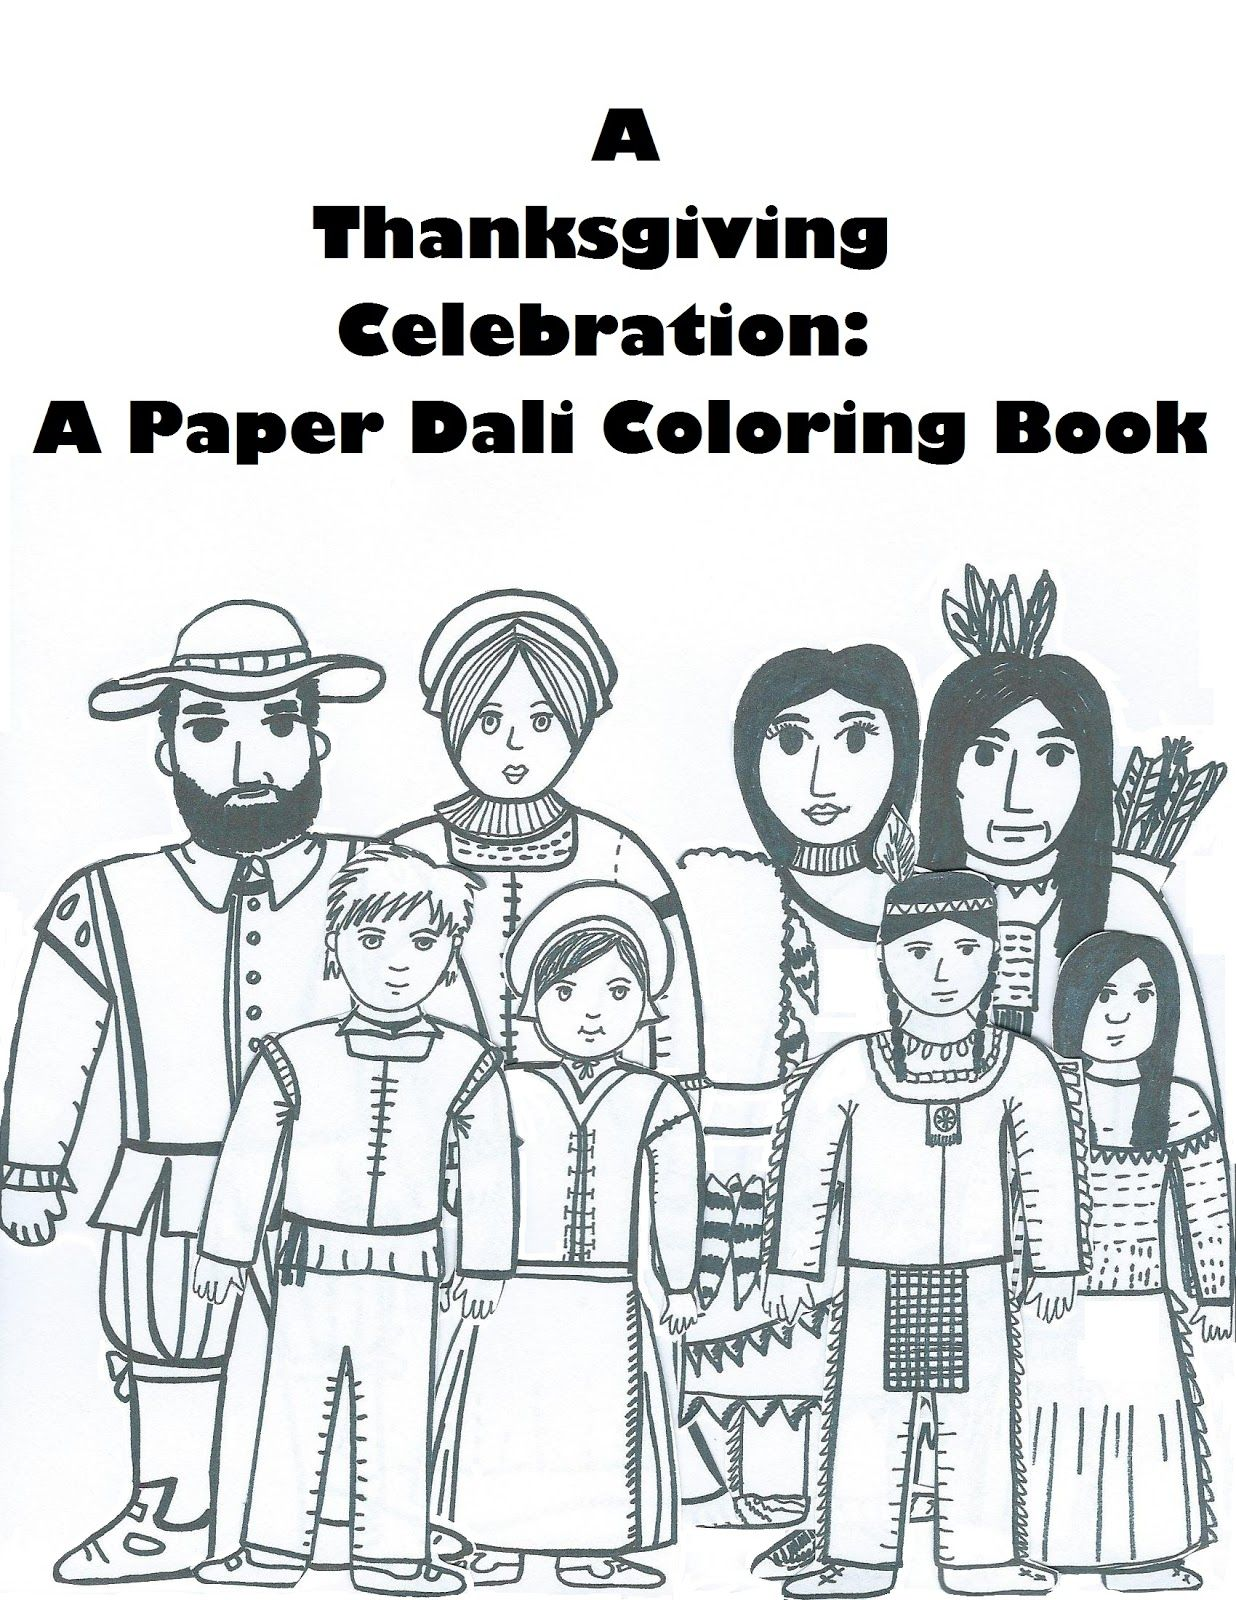 Advent Coloring Pages Catholic Paper Dali A Thanksgiving Coloring Book Thanksgiving Coloring Book Coloring Books Advent Coloring